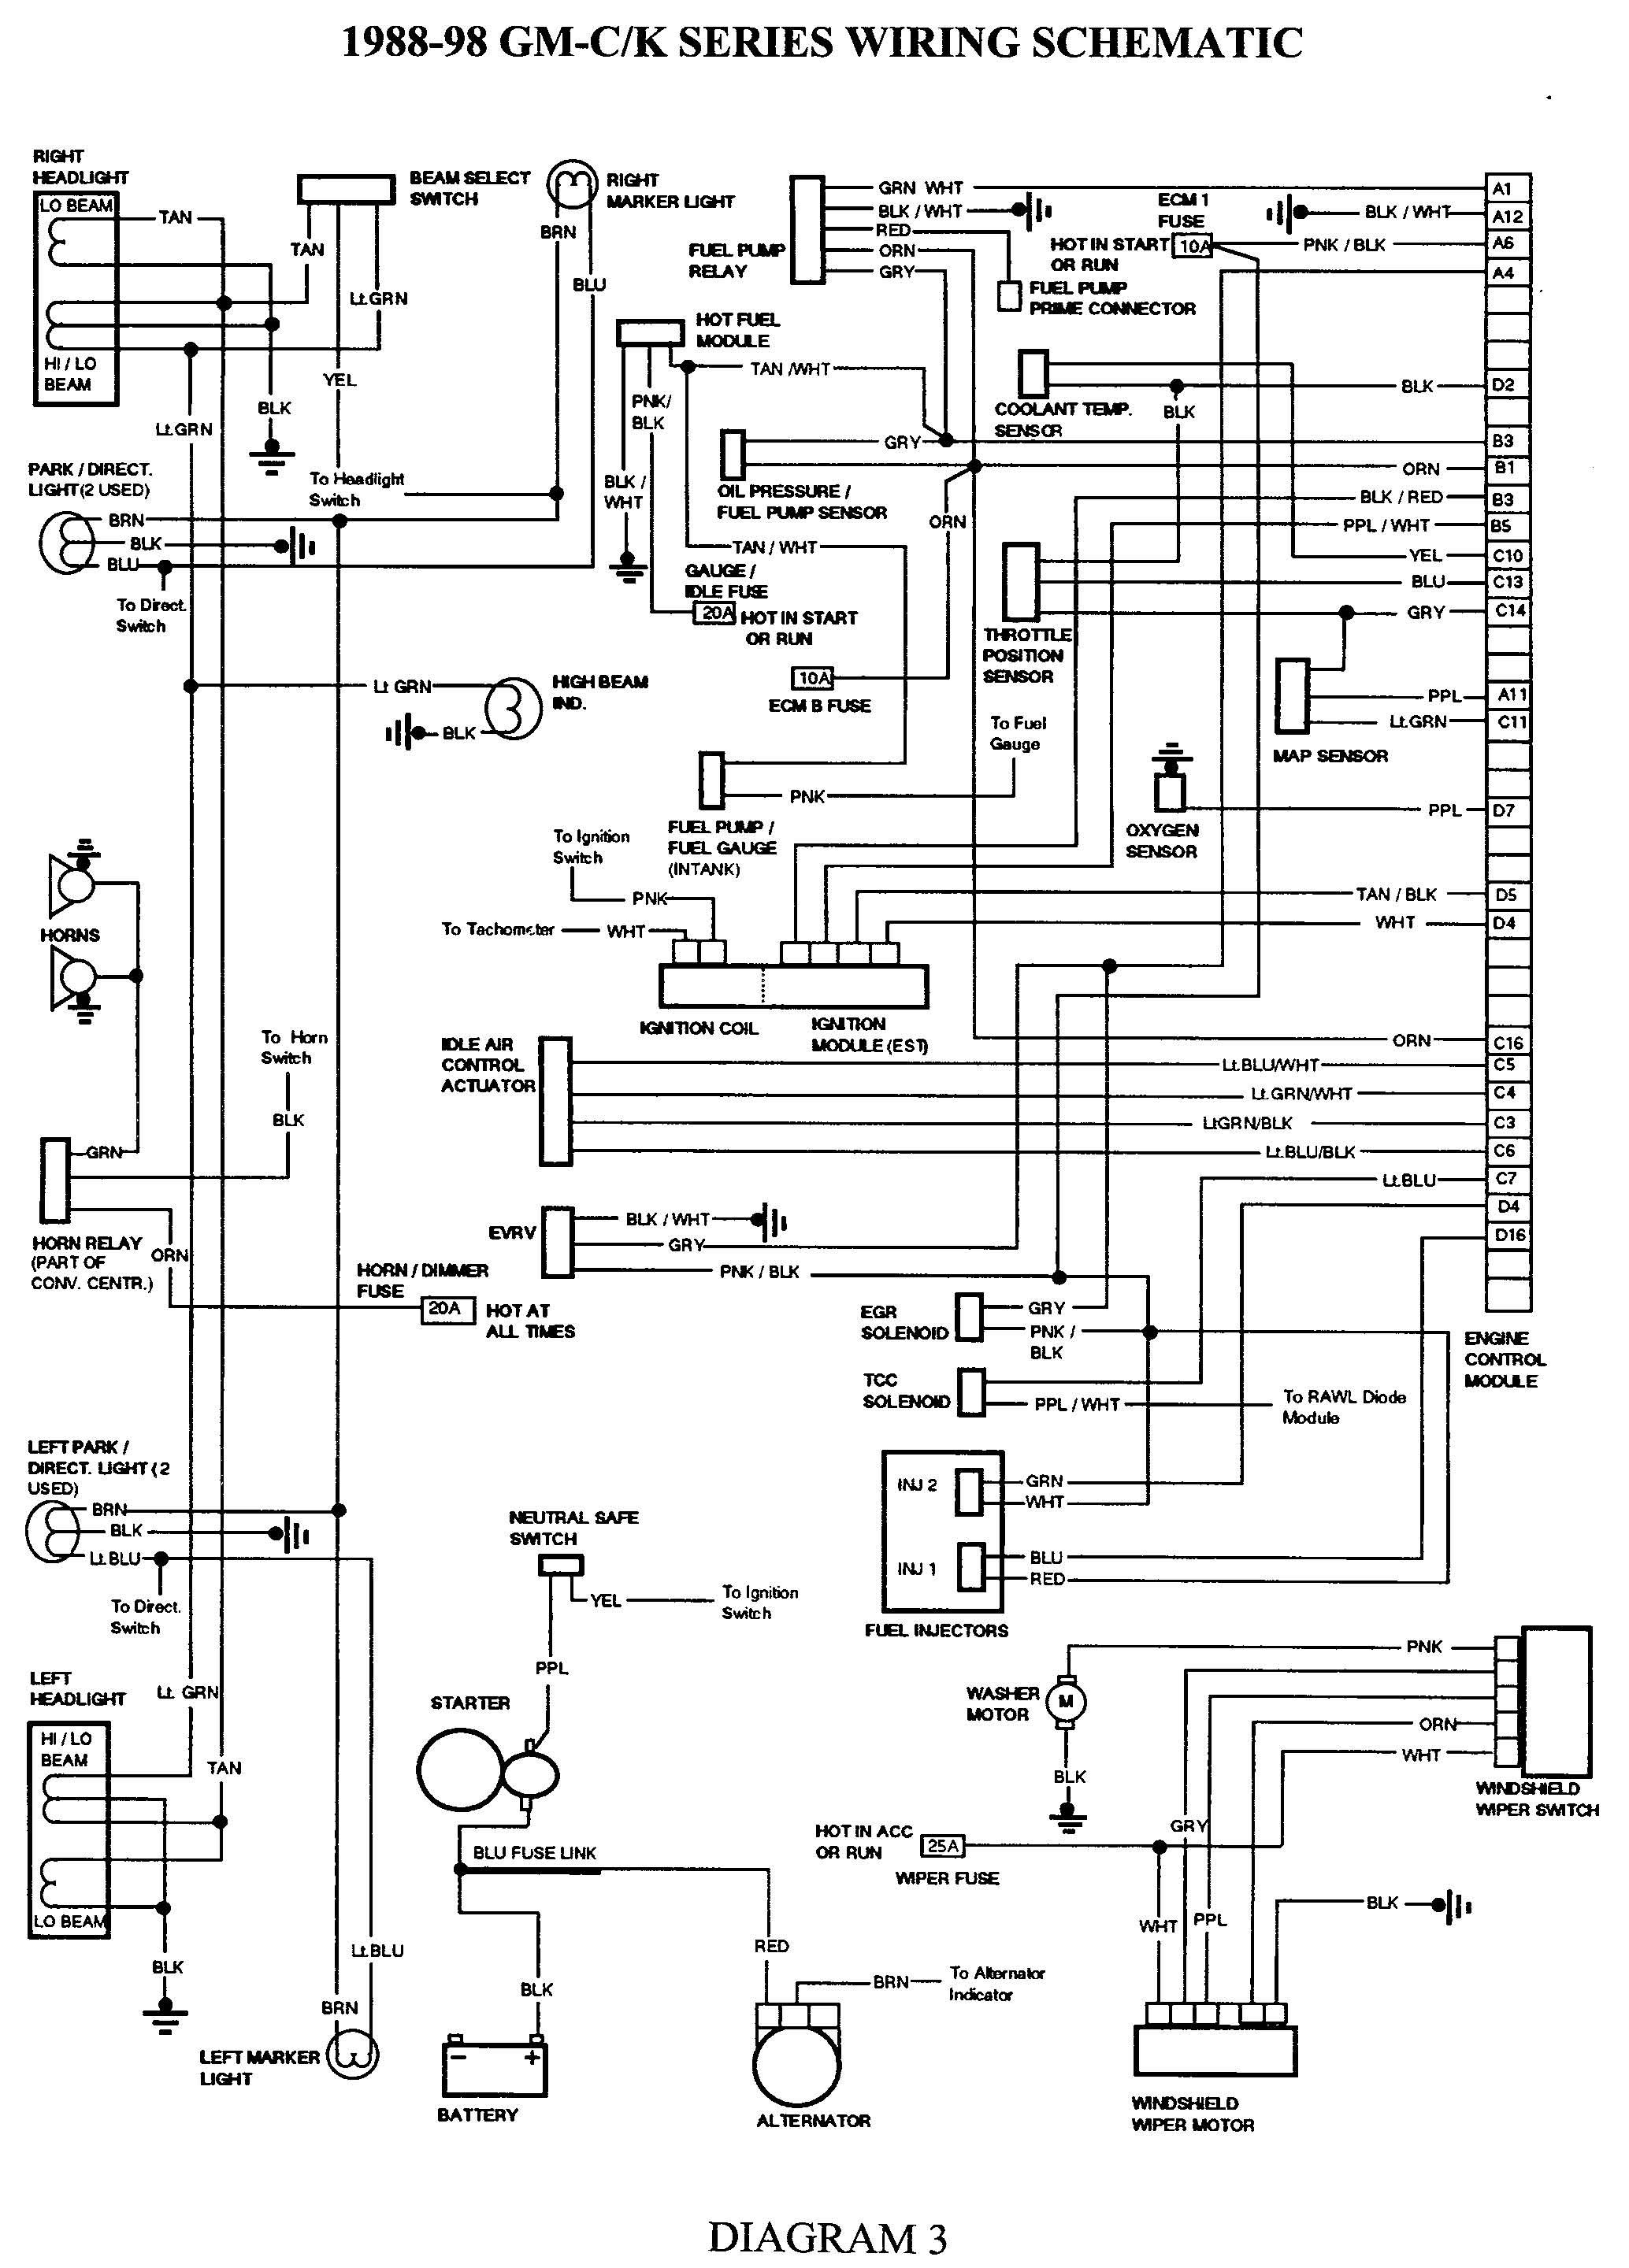 1104C Allison 1000 Transmission Wiring Diagram | Digital ... on 4t65e wiring diagram, 4l60e transmission, 5r55s wiring diagram, 6l90e wiring diagram, 4t40e wiring diagram, 5r110 wiring diagram, e4od wiring diagram, a604 wiring diagram, aode wiring diagram, 700r4 wiring diagram, harness wiring diagram, nv4500 wiring diagram, neutral safety switch wiring diagram, cd4e wiring diagram, 4x4 wiring diagram, th350c wiring diagram, 4l80e wiring diagram, turbo 400 wiring diagram, transmission wiring diagram, th350 wiring diagram,